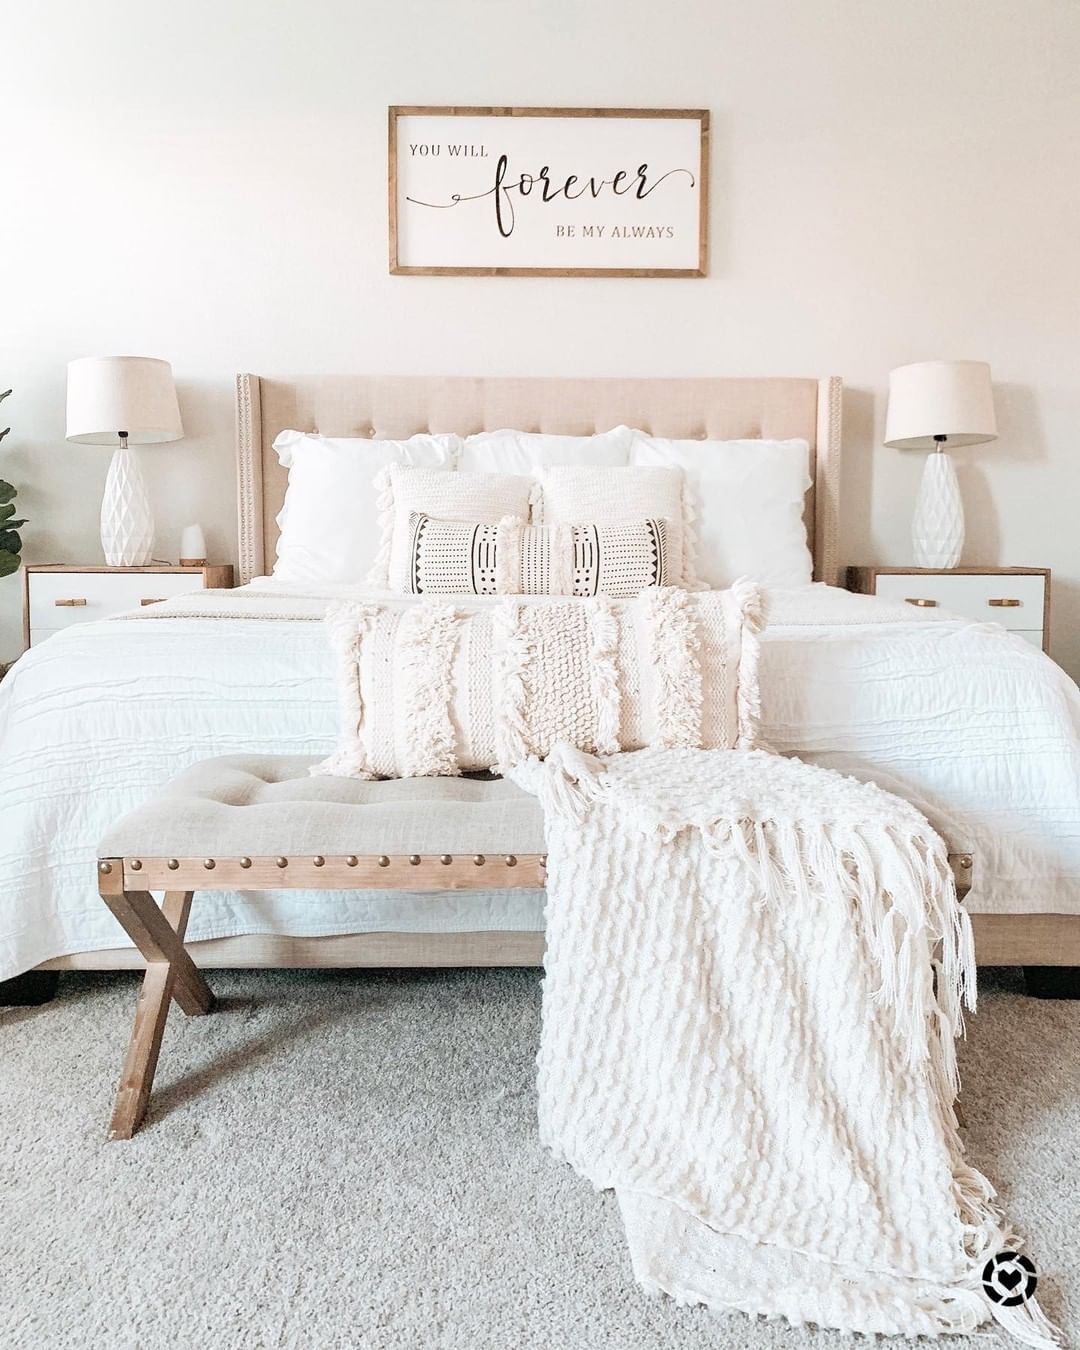 "#LTKhome on Instagram: ""Cozy bedroom inspo 